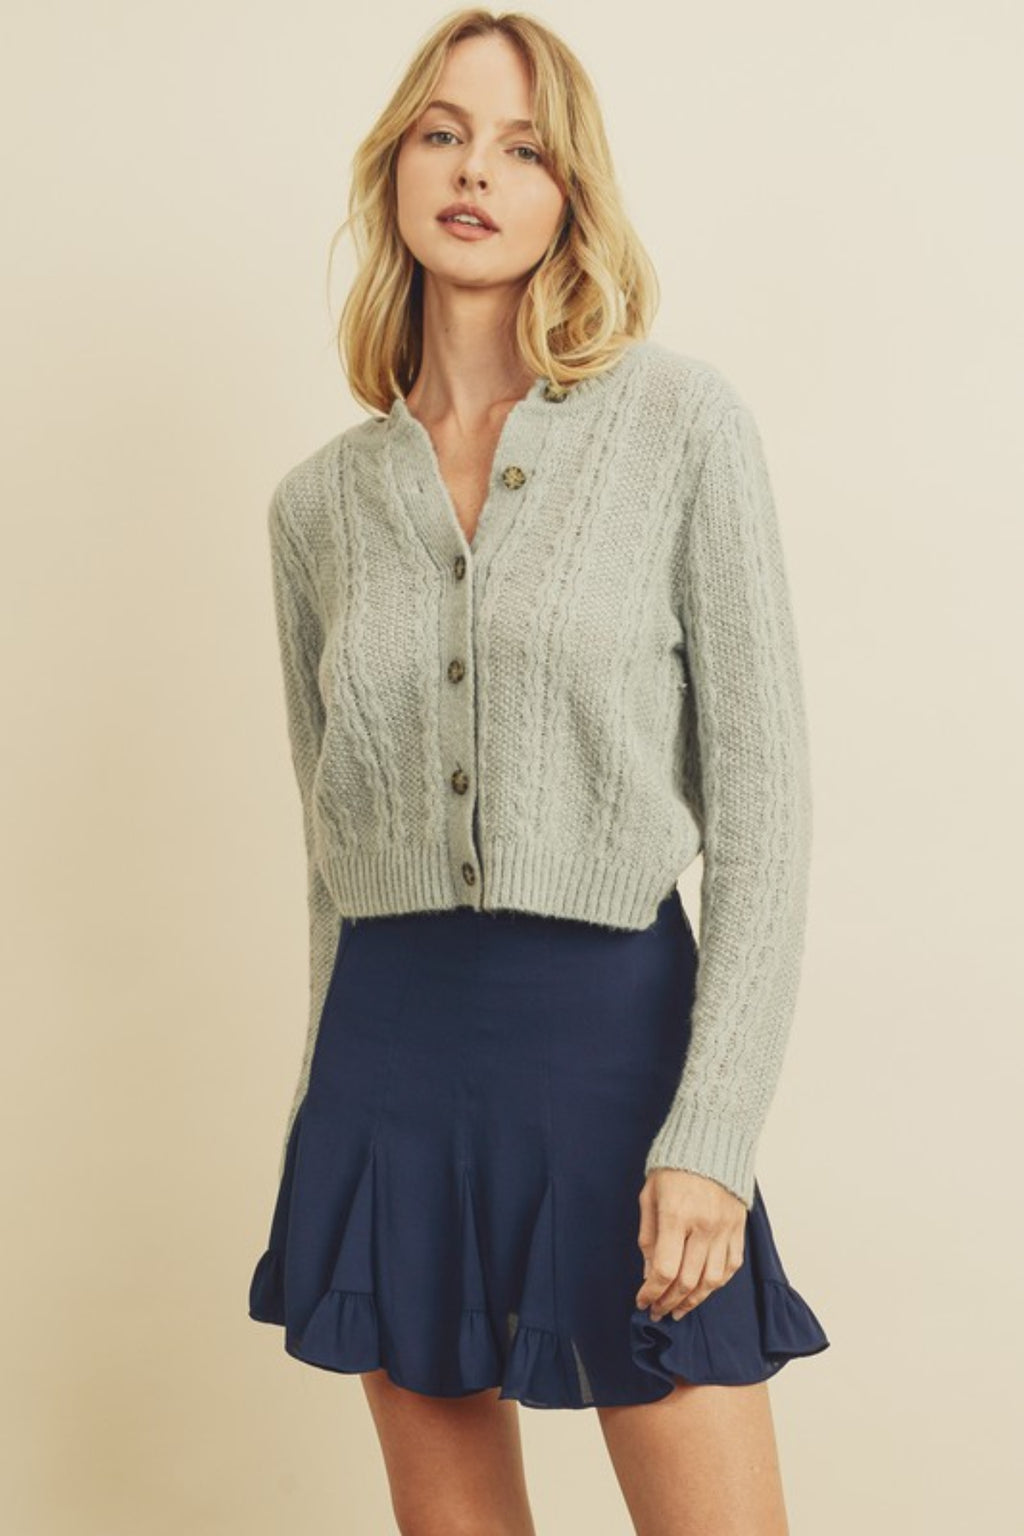 HARVEST WAVE KNIT BUTTON-UP CARDIGAN SWEATER